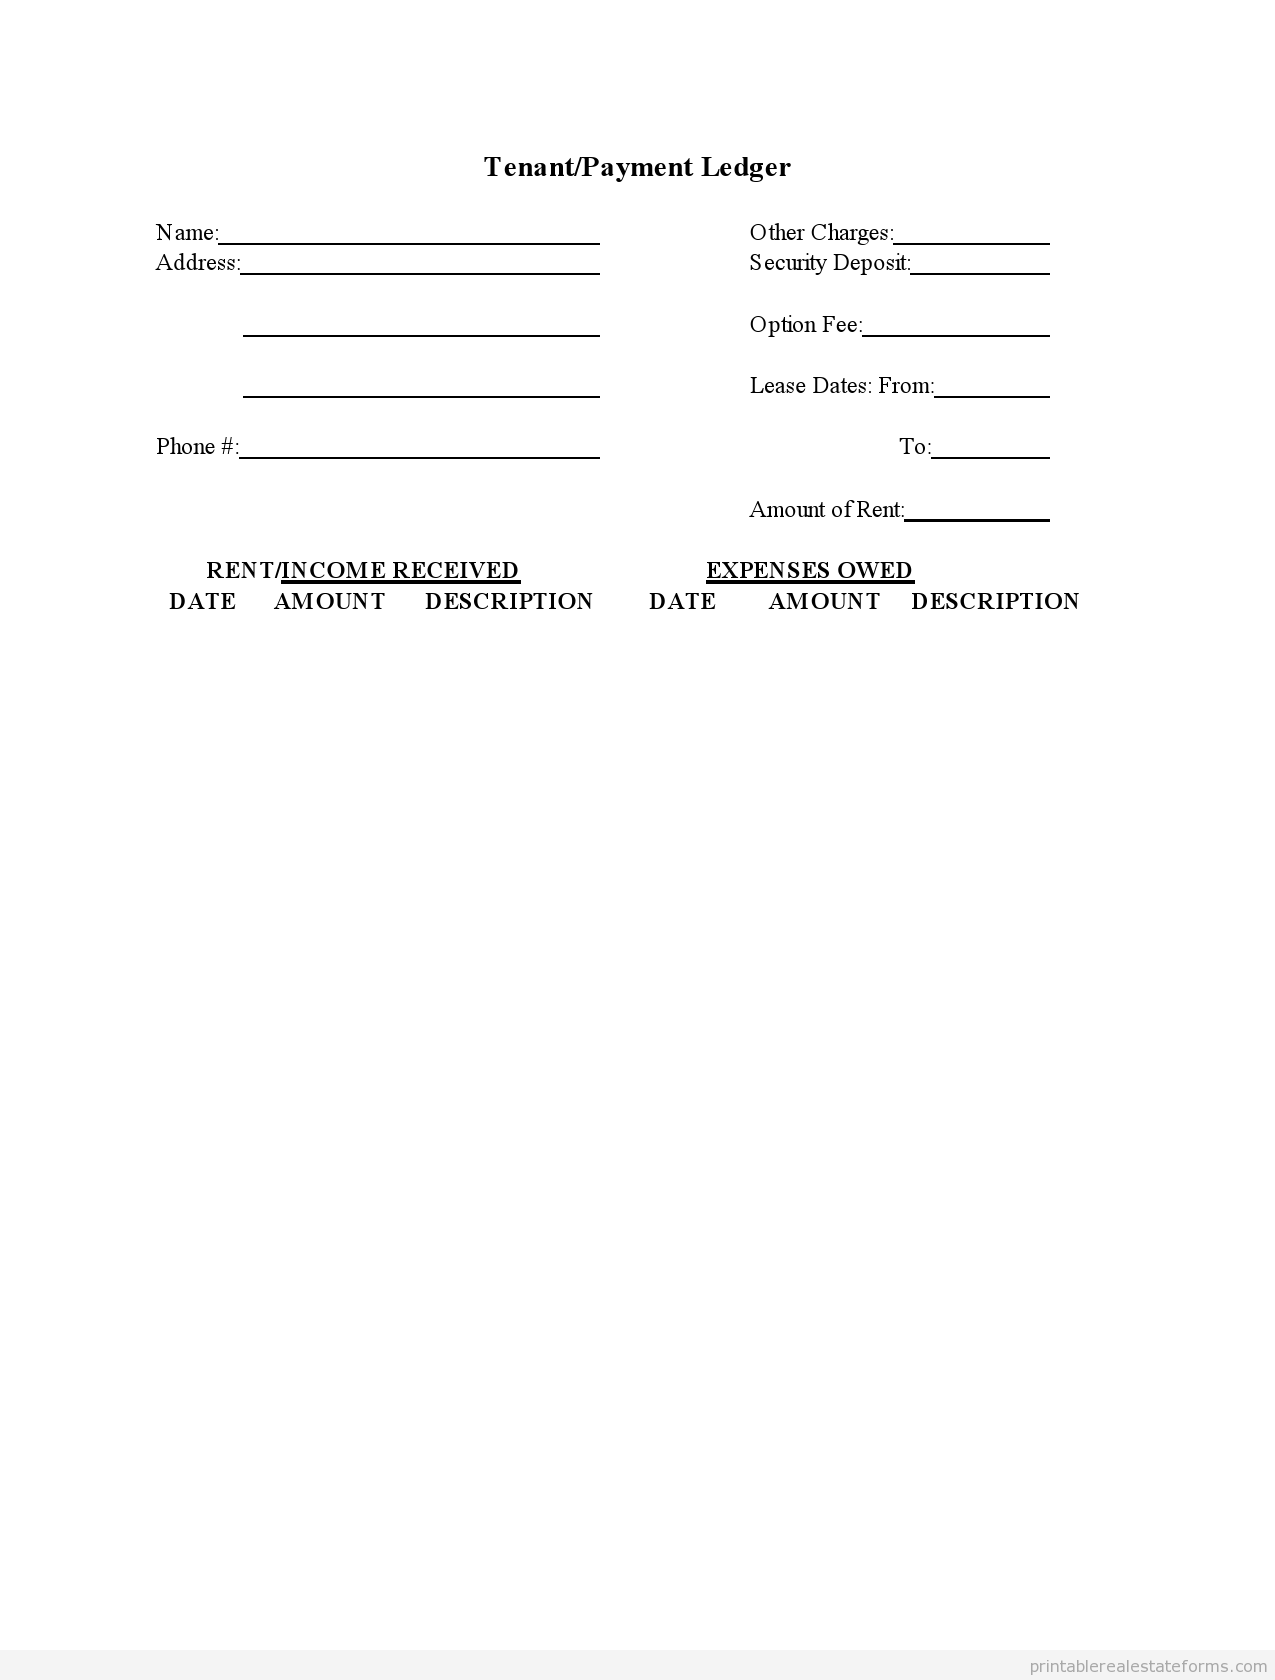 Sample Printable Tenant Payment Ledger Form  Sample Real Estate